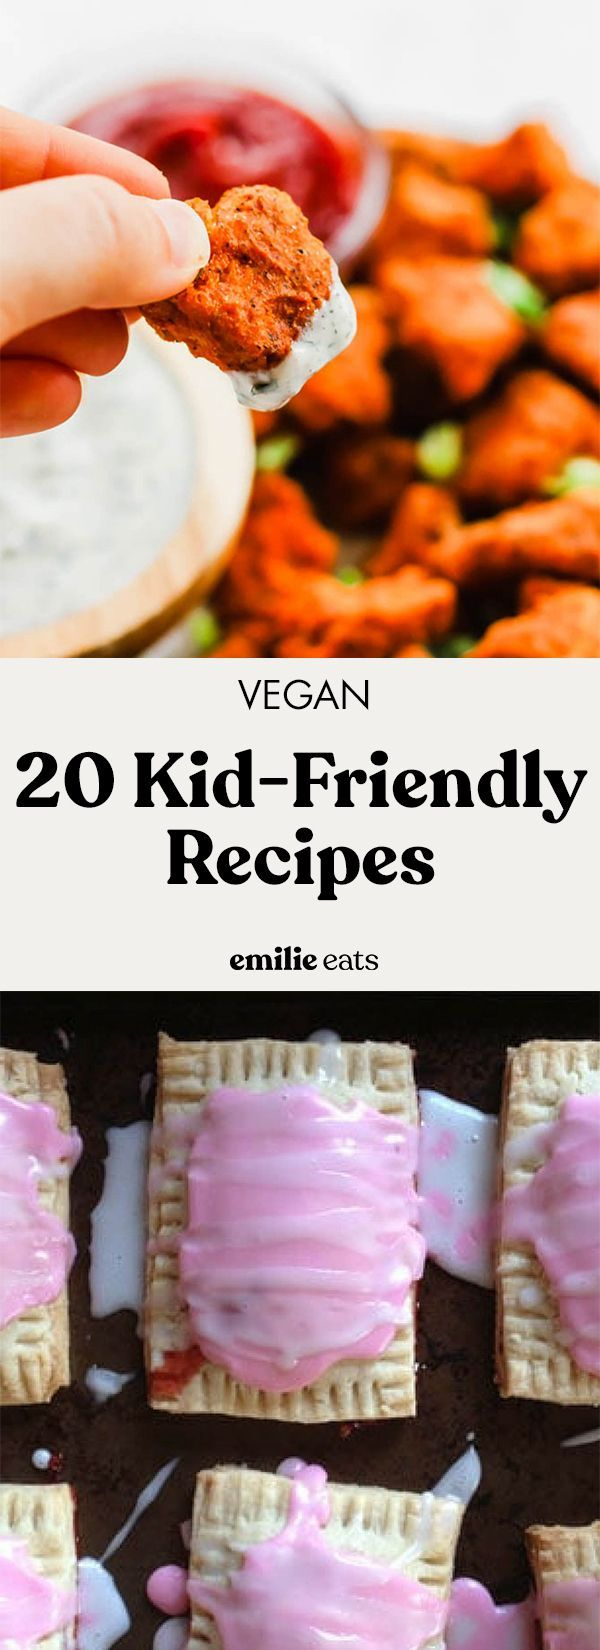 20 Kid Friendly Vegan Recipes images